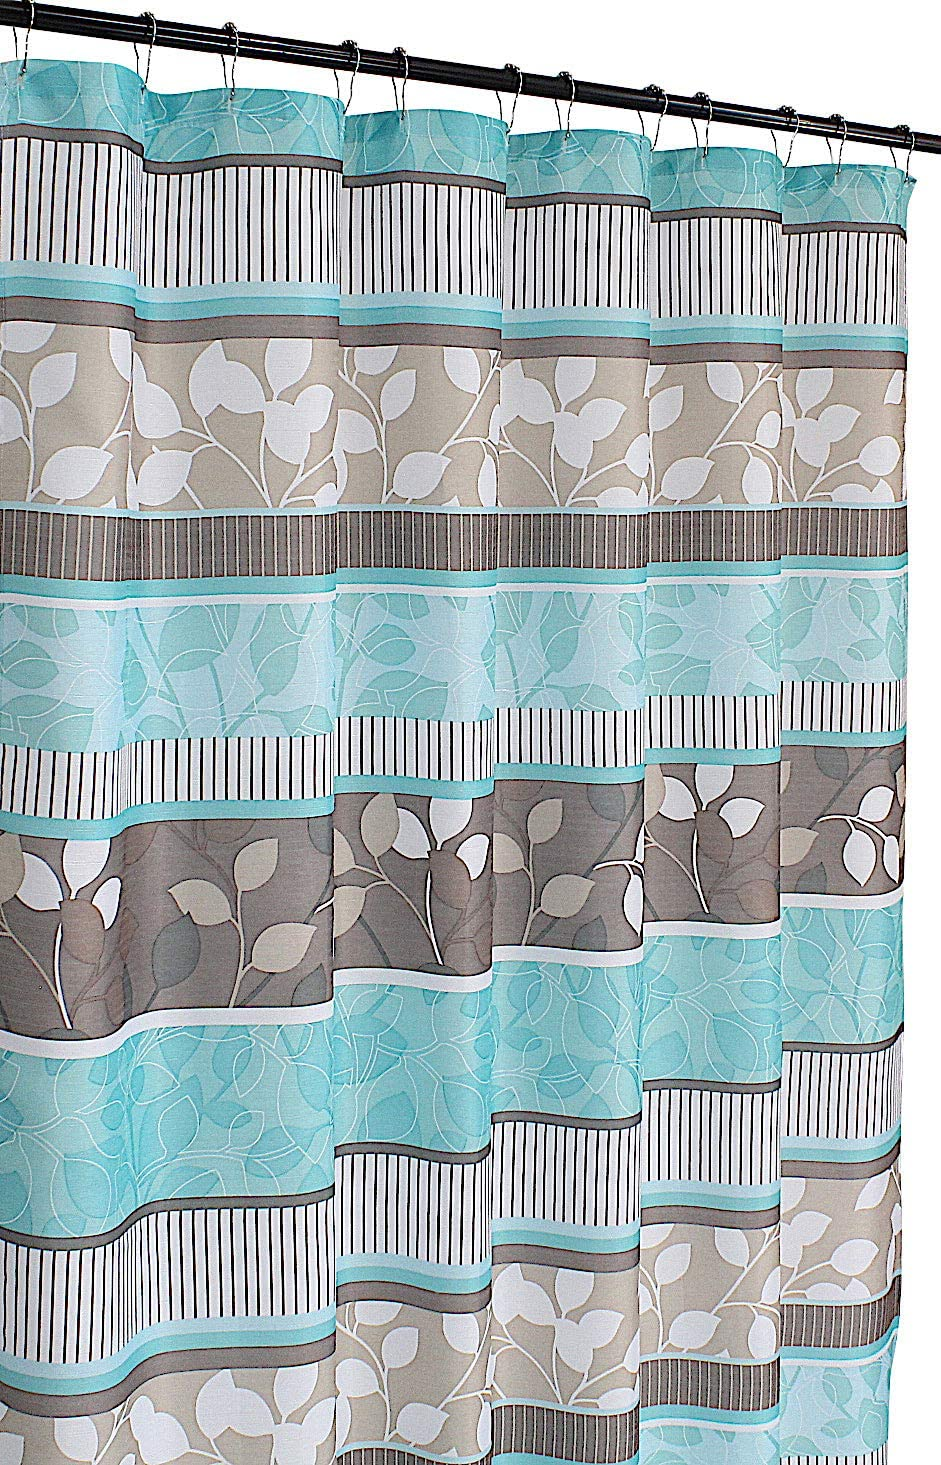 Serafina Home Aqua Blue Fabric Shower Curtain: Primitive Striped Floral Design, 70 by 72 Inches, Teal Aqua Brown Beige